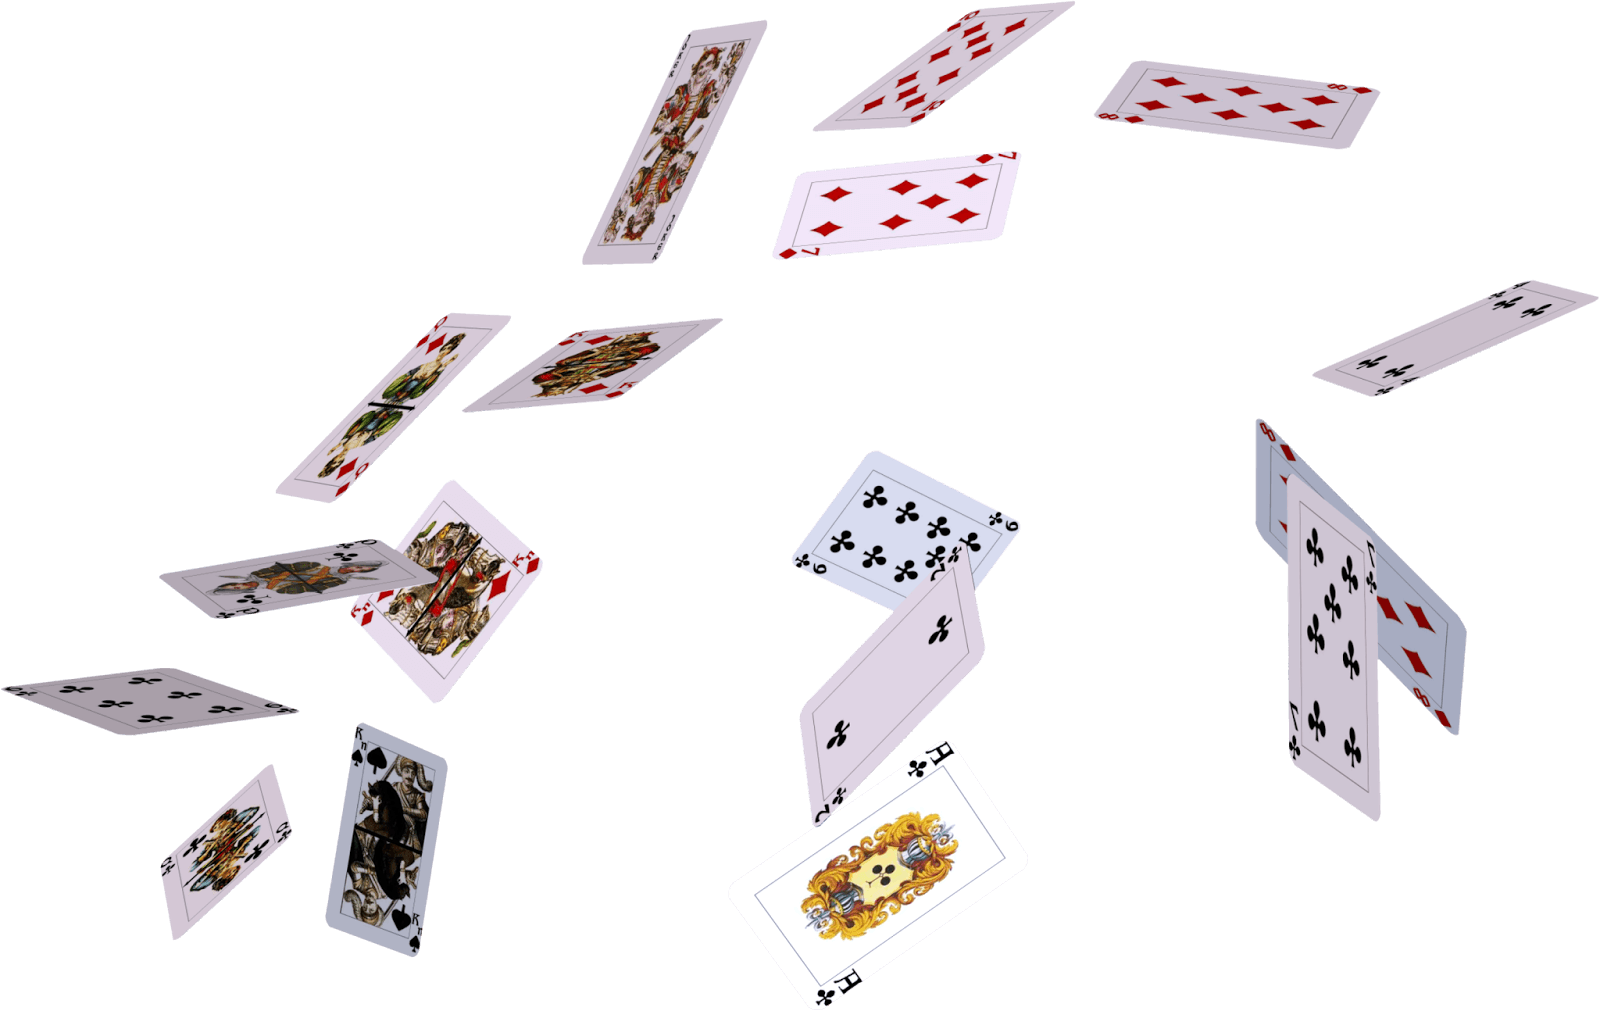 Falling cards png. Download flying hq image